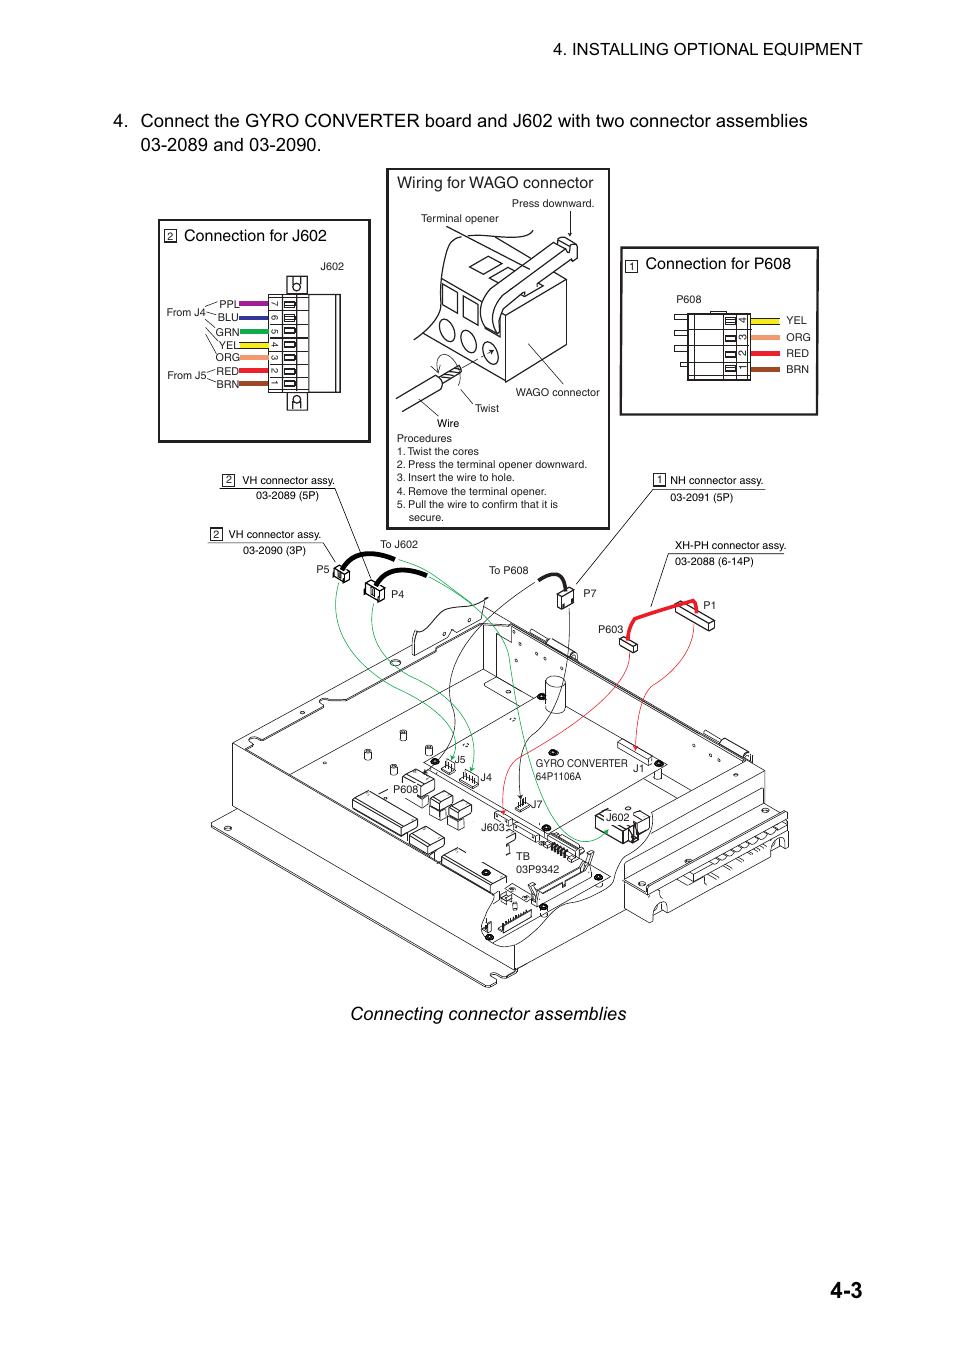 Connecting connector assemblies, Installing optional